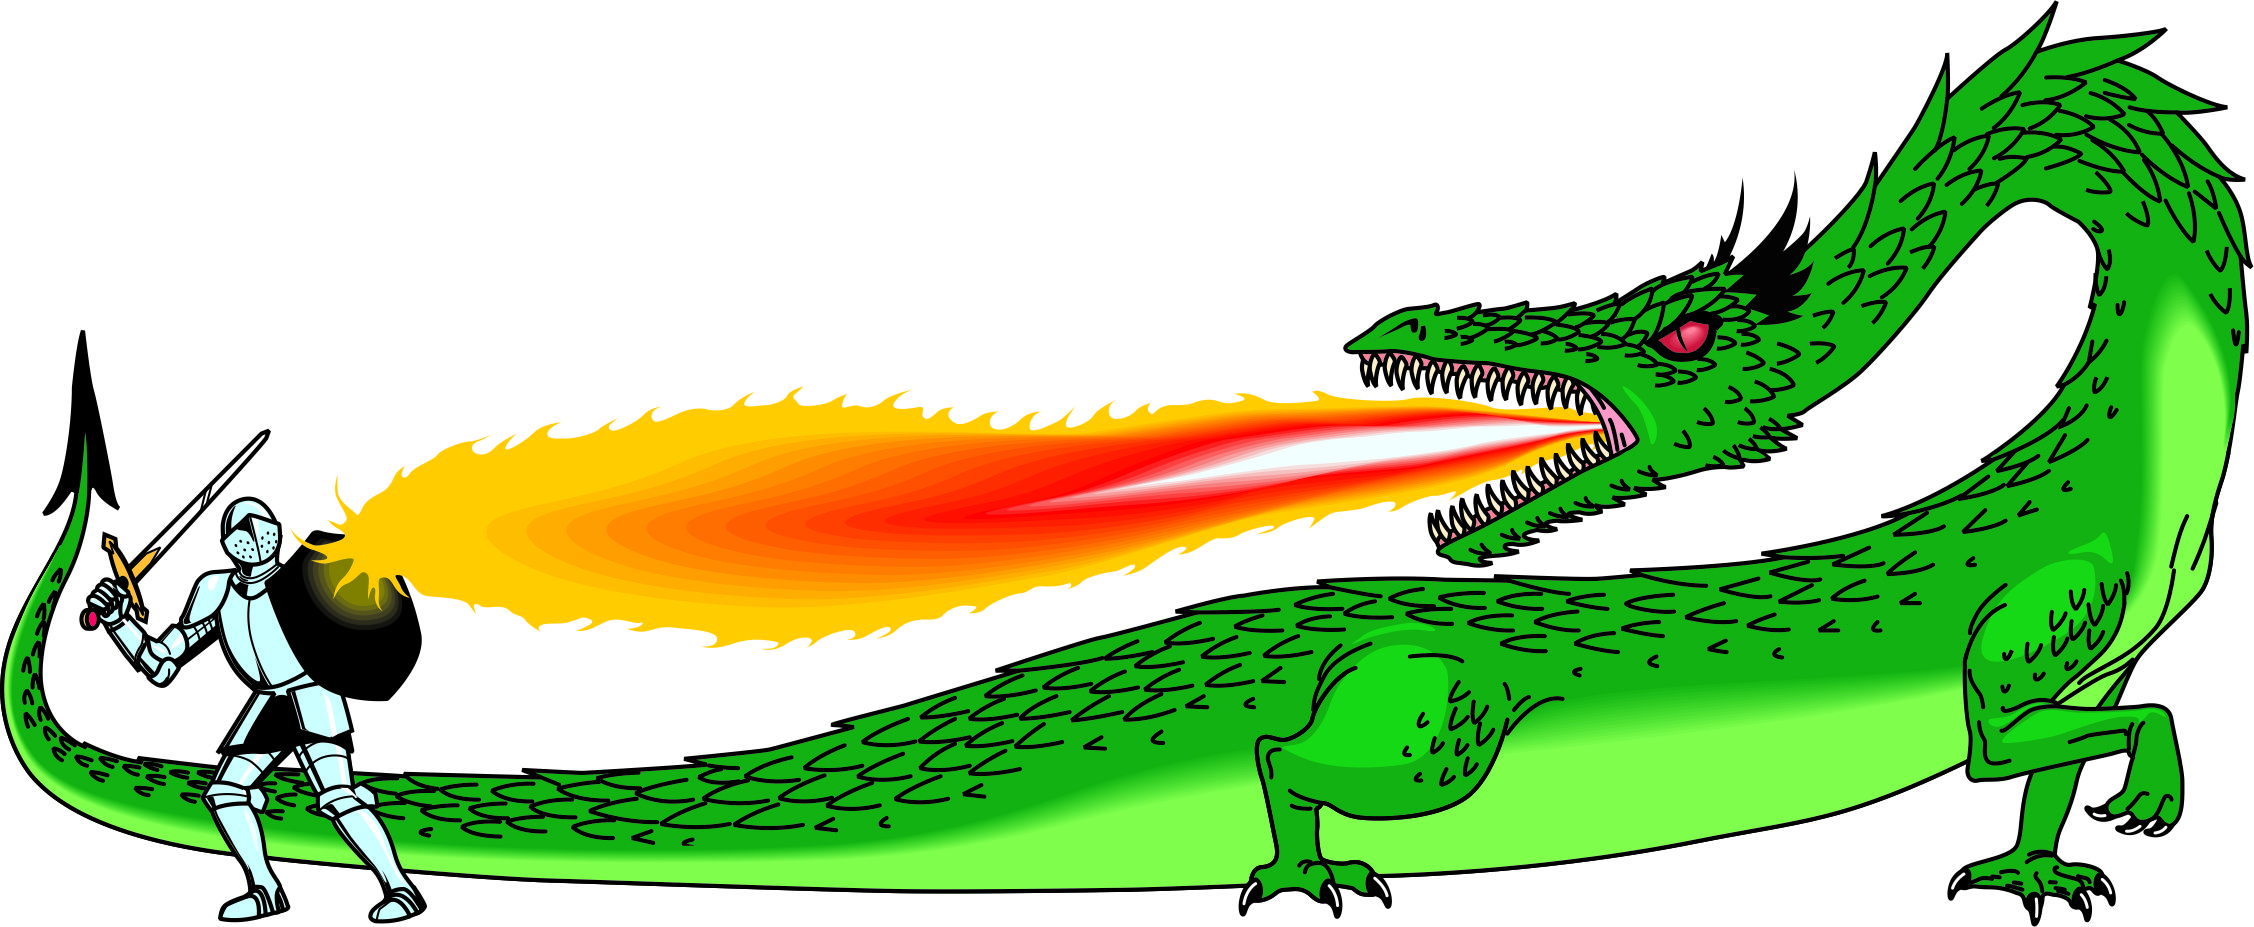 Fire Breathing Dragon Pictures.